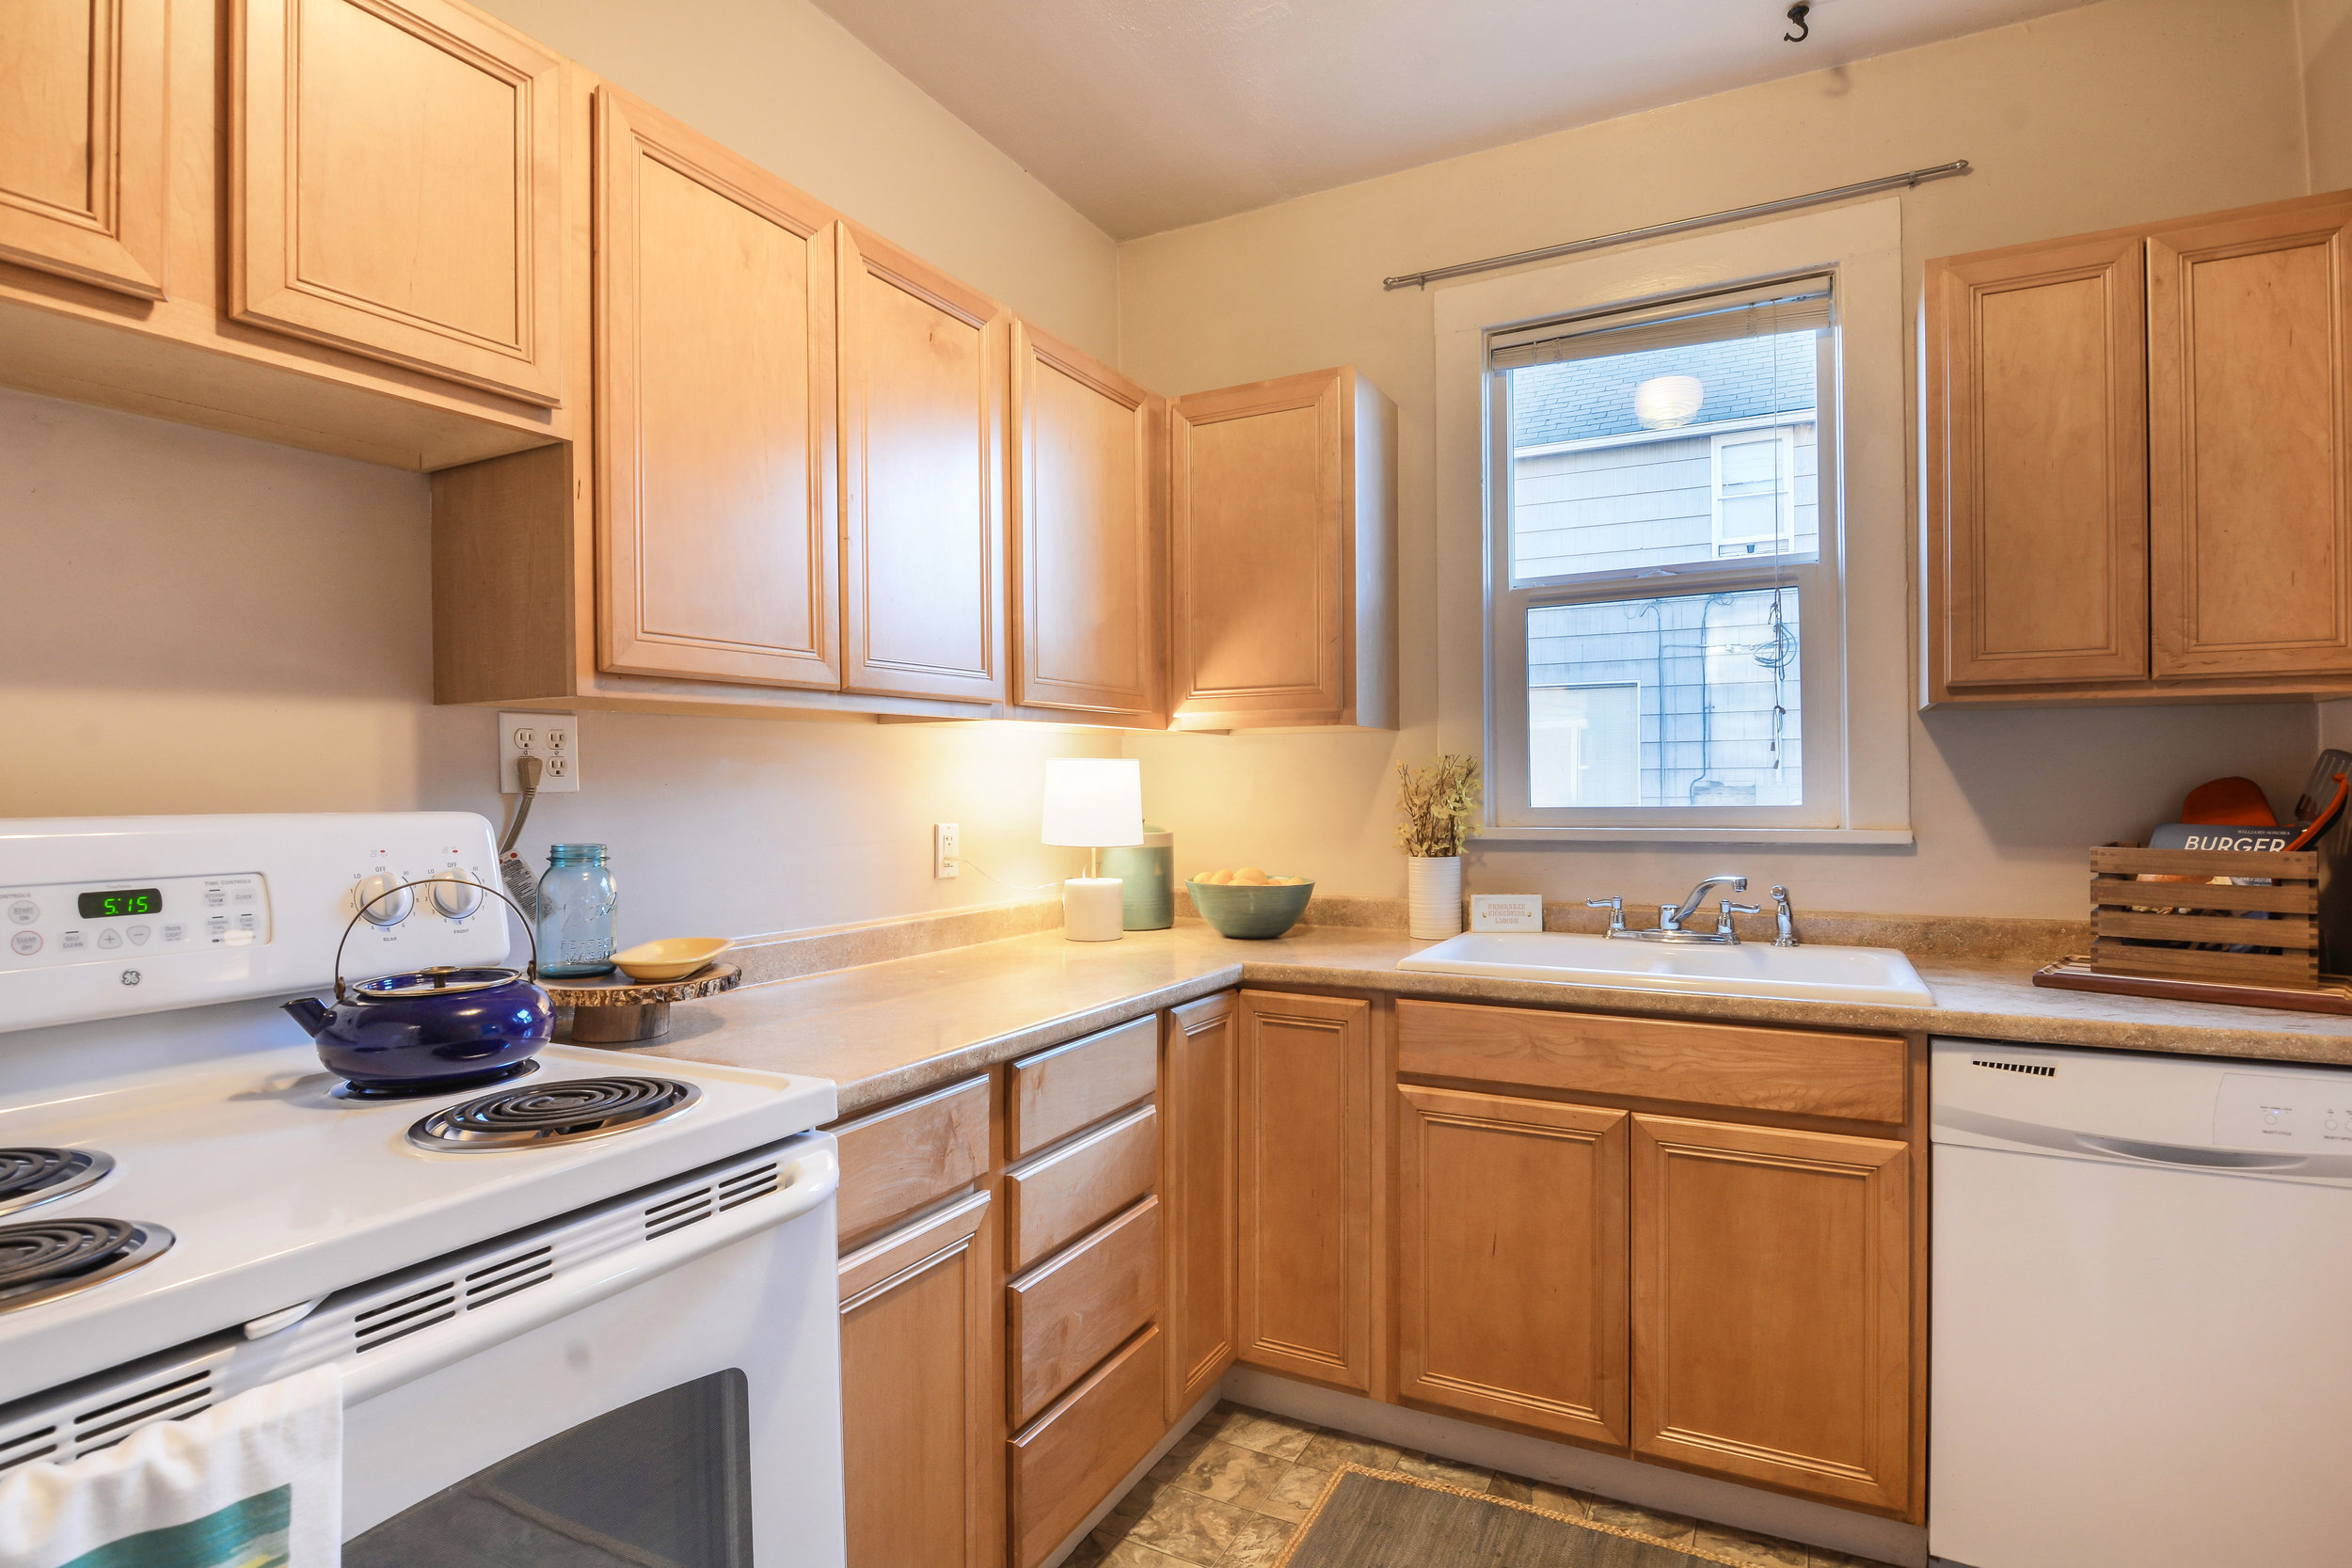 Wooden cabinets, a window facing west over the sink, and easy to clean vinyl floors complete the kitchen.